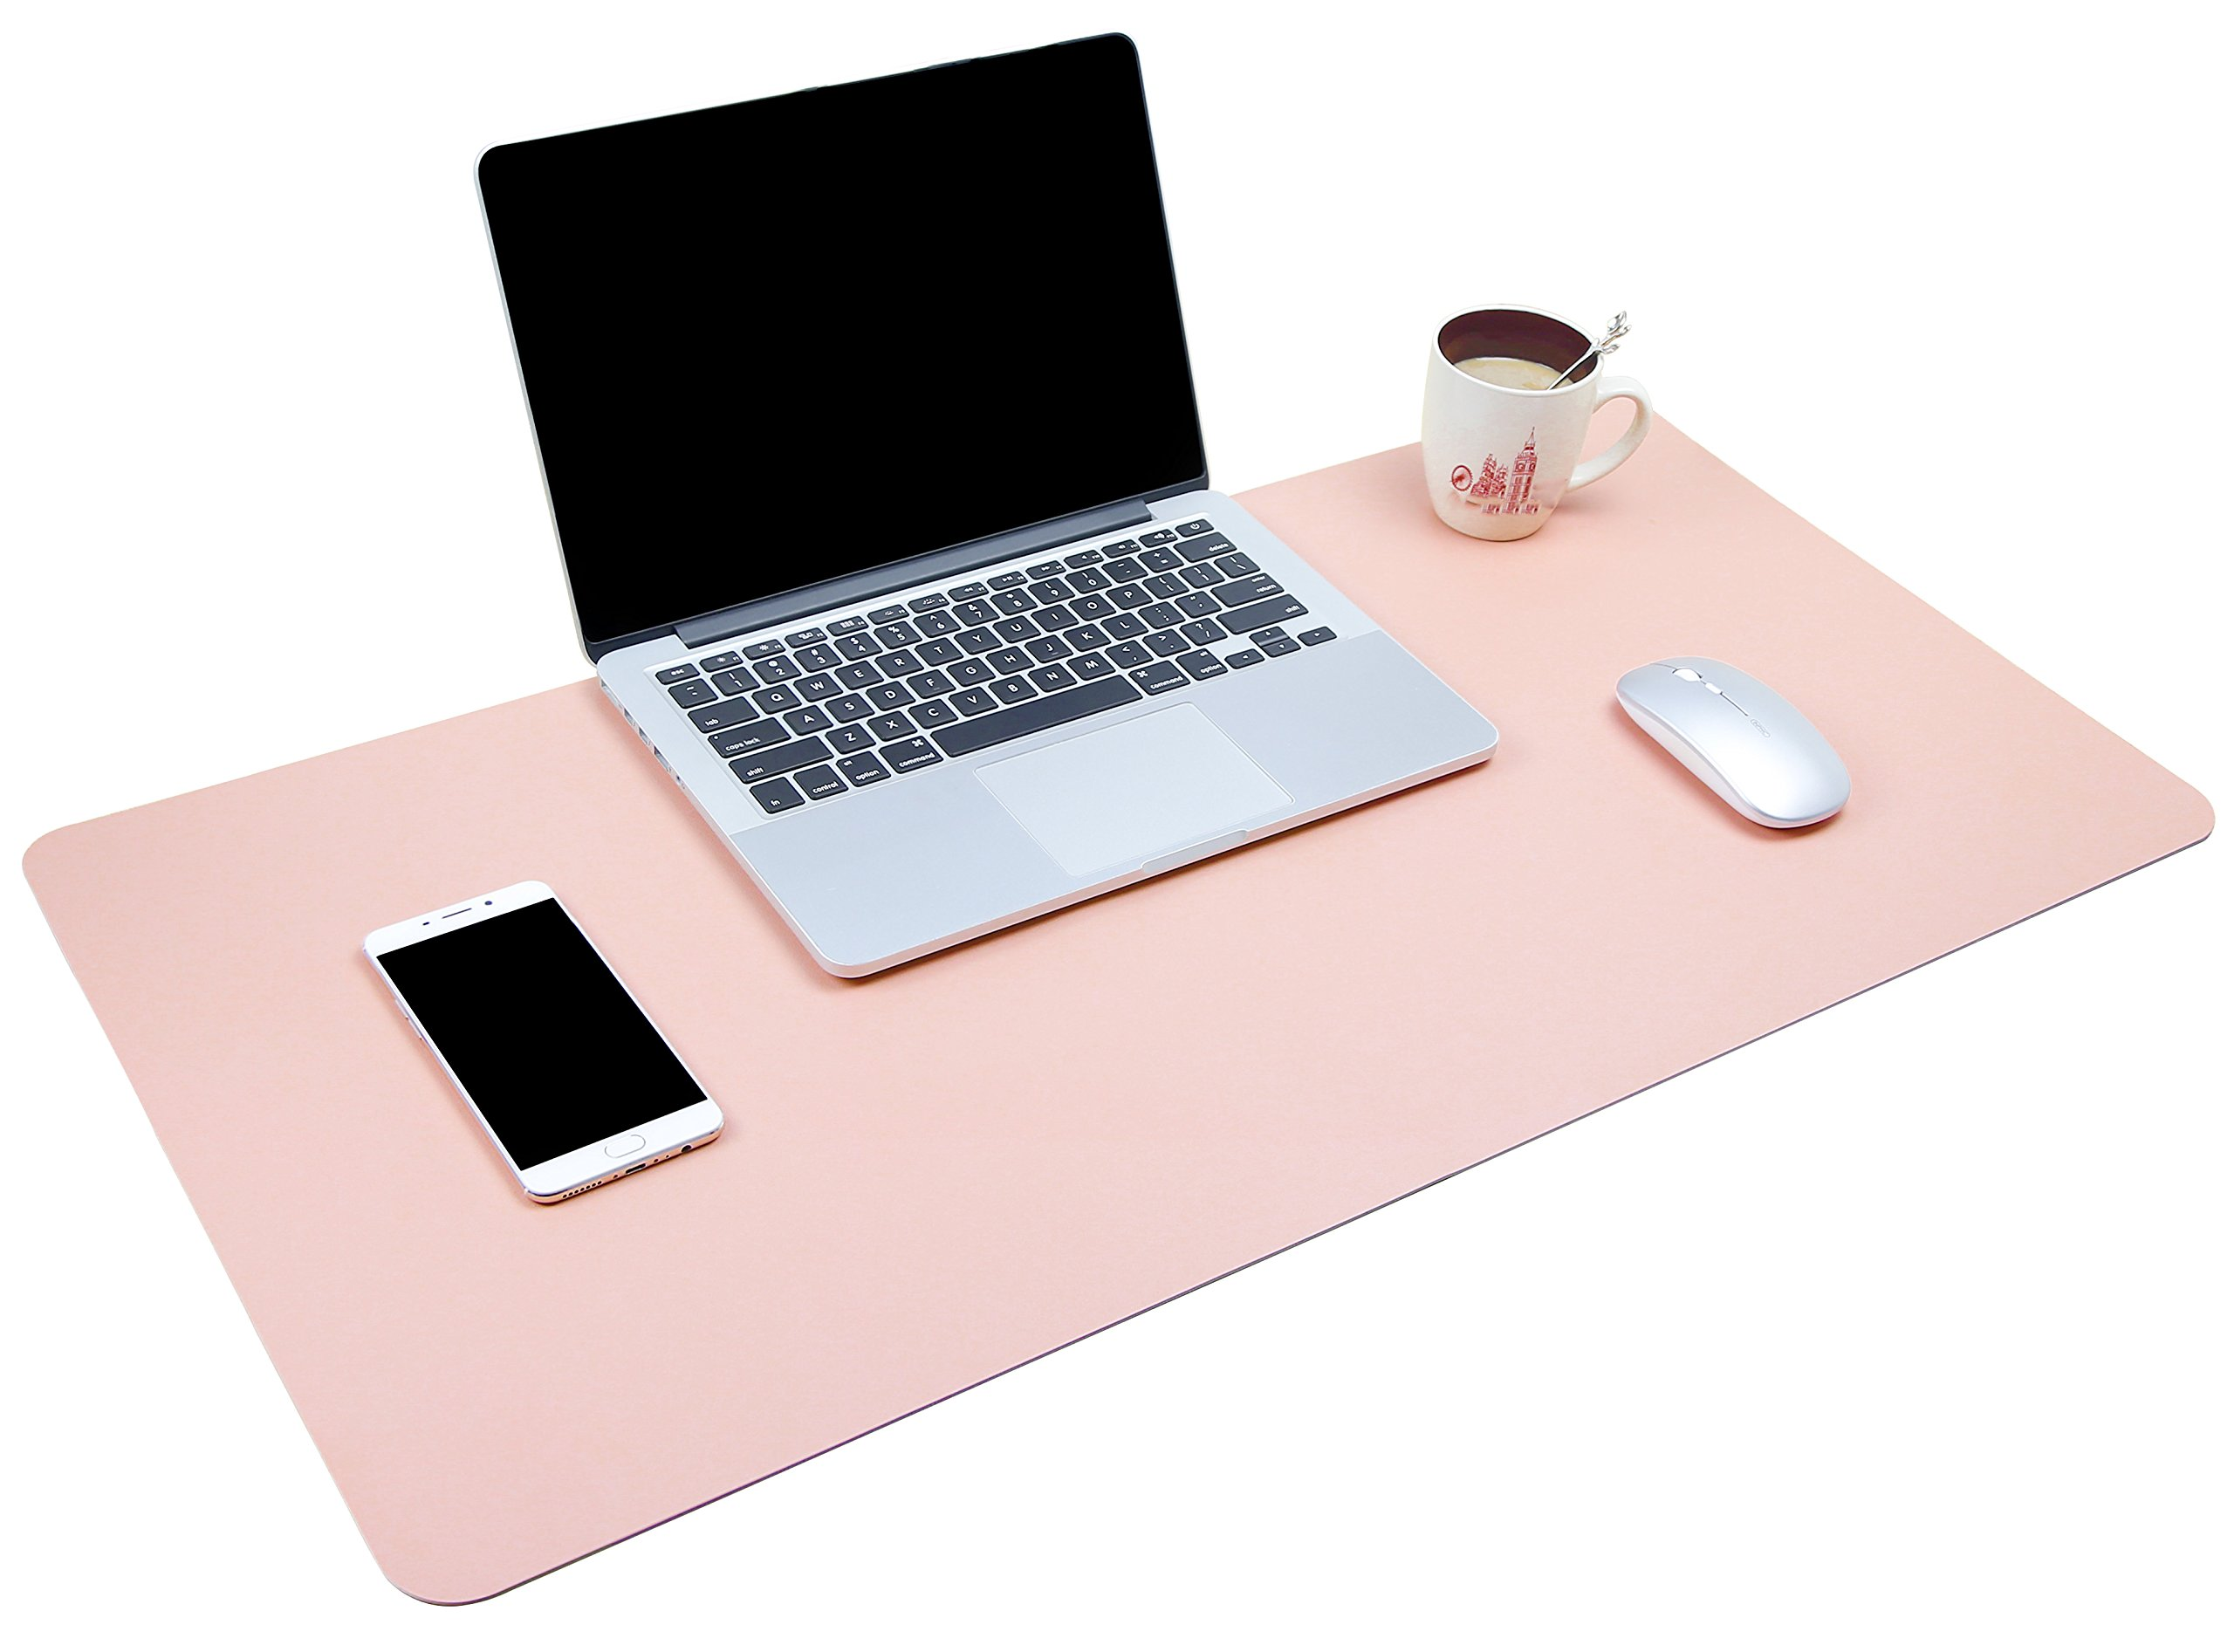 Multifunctional Office Desk Pad, 31.5'' x 15.7'' YSAGi Ultra Thin Waterproof PU Leather Mouse Pad, Dual Use Desk Writing Mat for Office/Home (31.5'' x 15.7'', Pink)